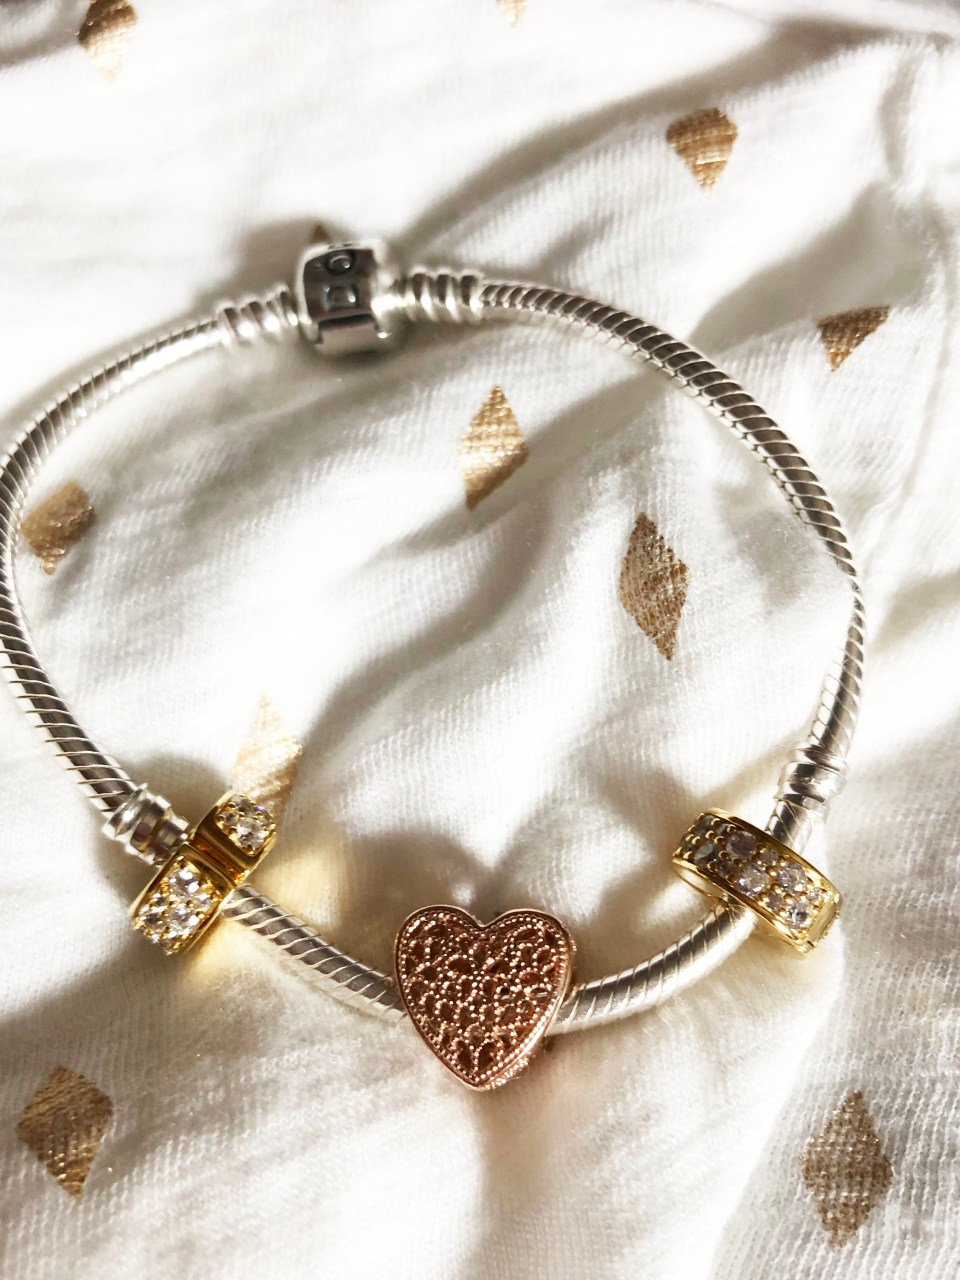 Pandora Bracelet - Filled with Romance Charm 3